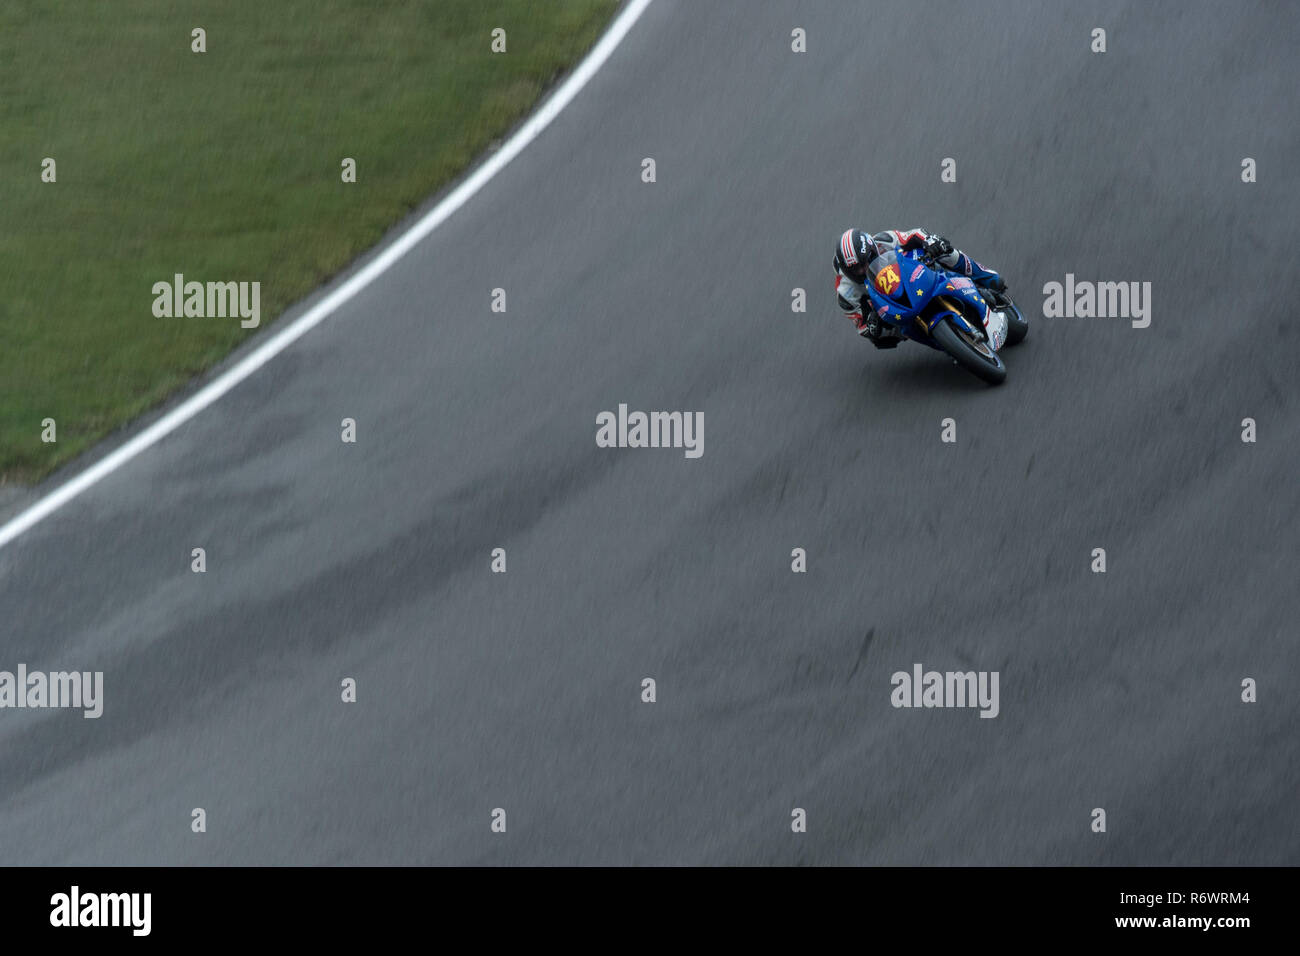 No 24 of the Super Bikes taking a fast downhill bend at Brands Hatch race circuit. - Stock Image